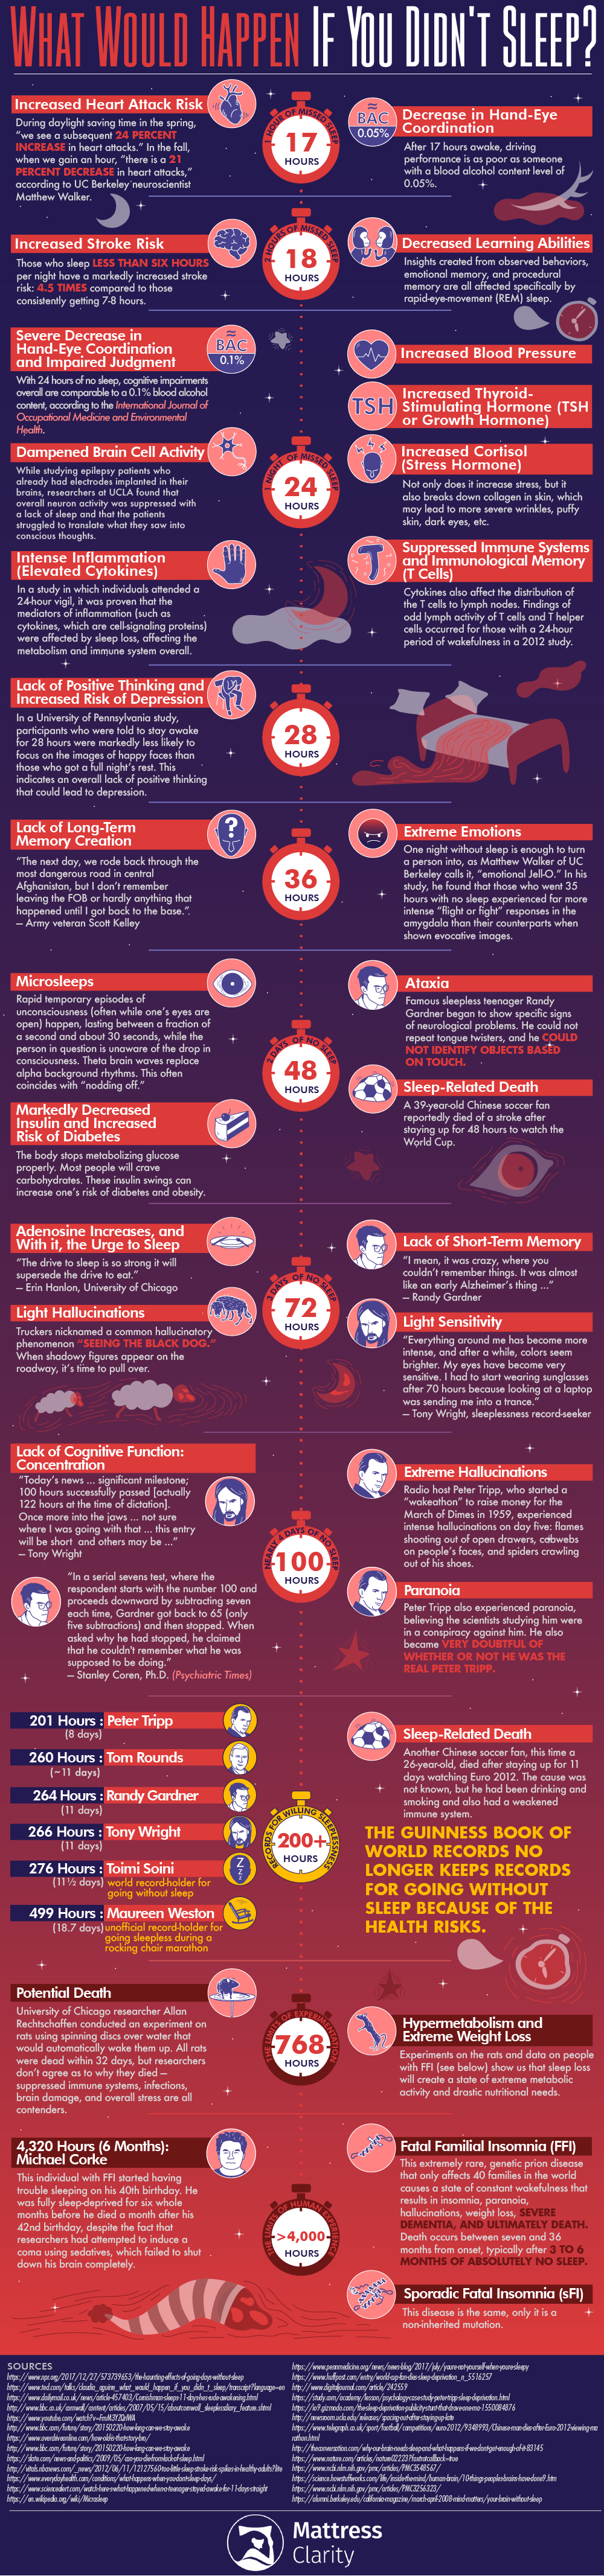 What Would Happen If You Didn't Sleep? #infographic